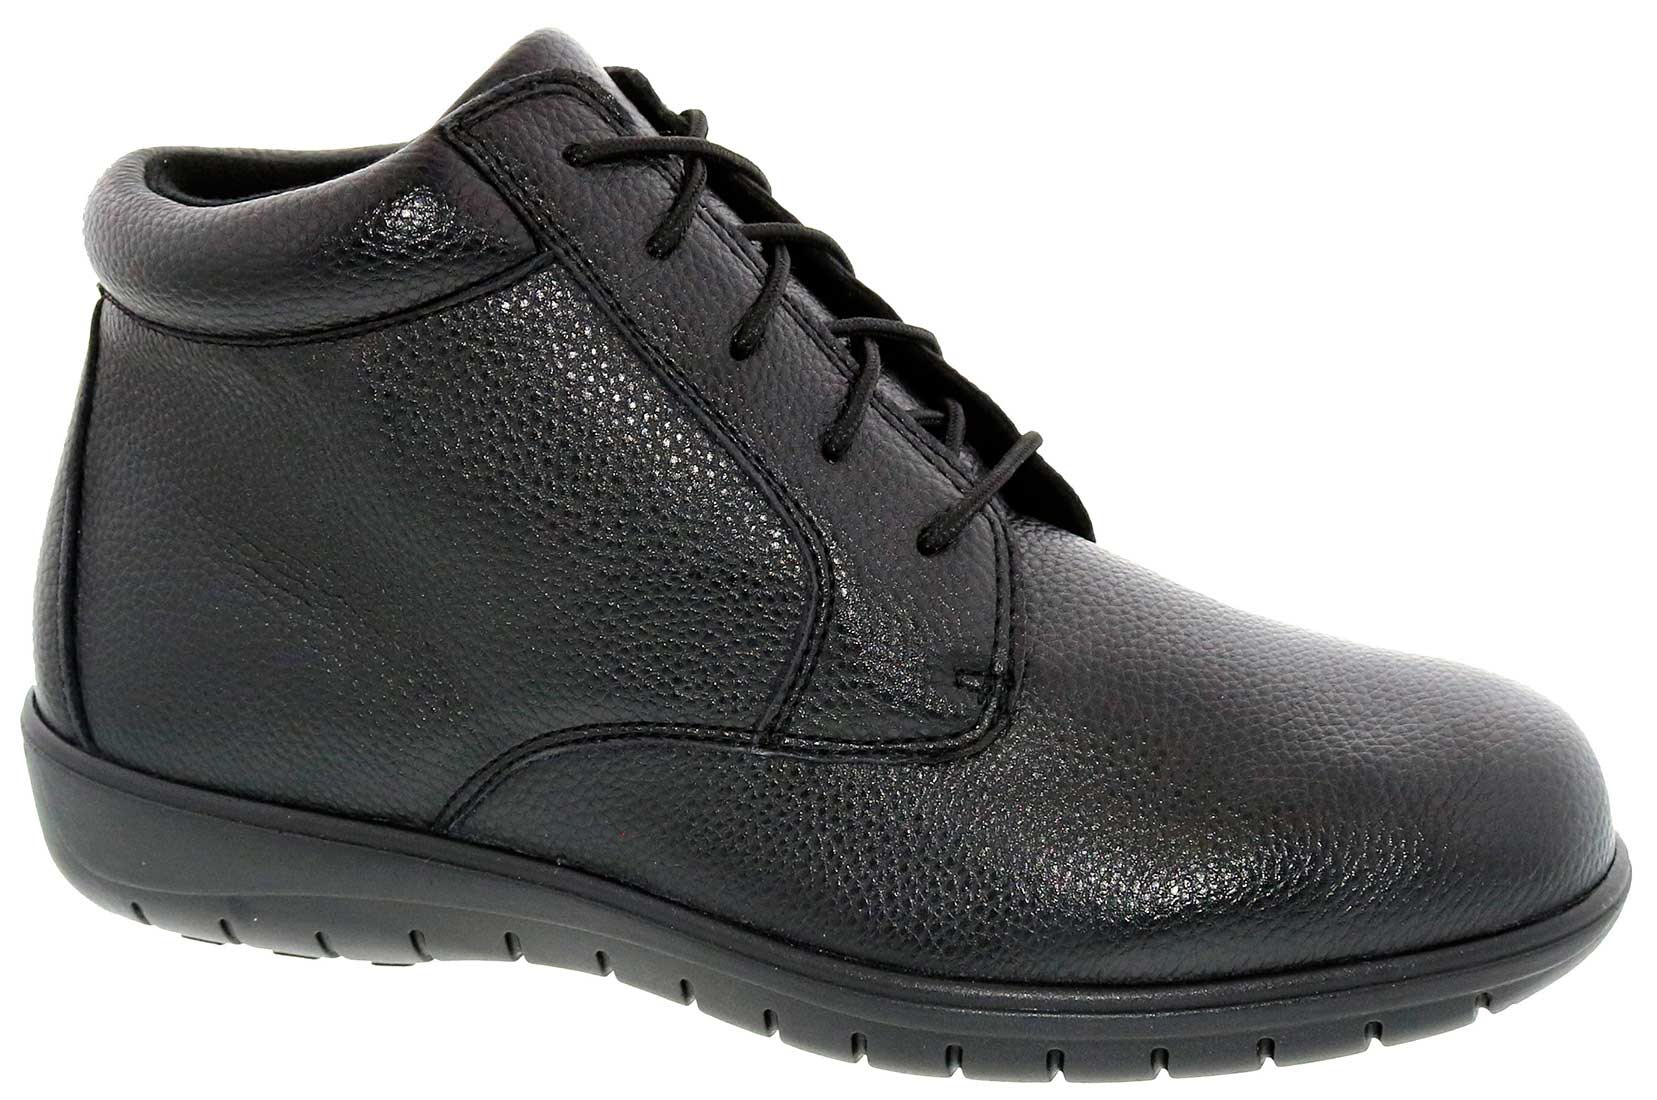 Footsaver - Domino - Black Leather